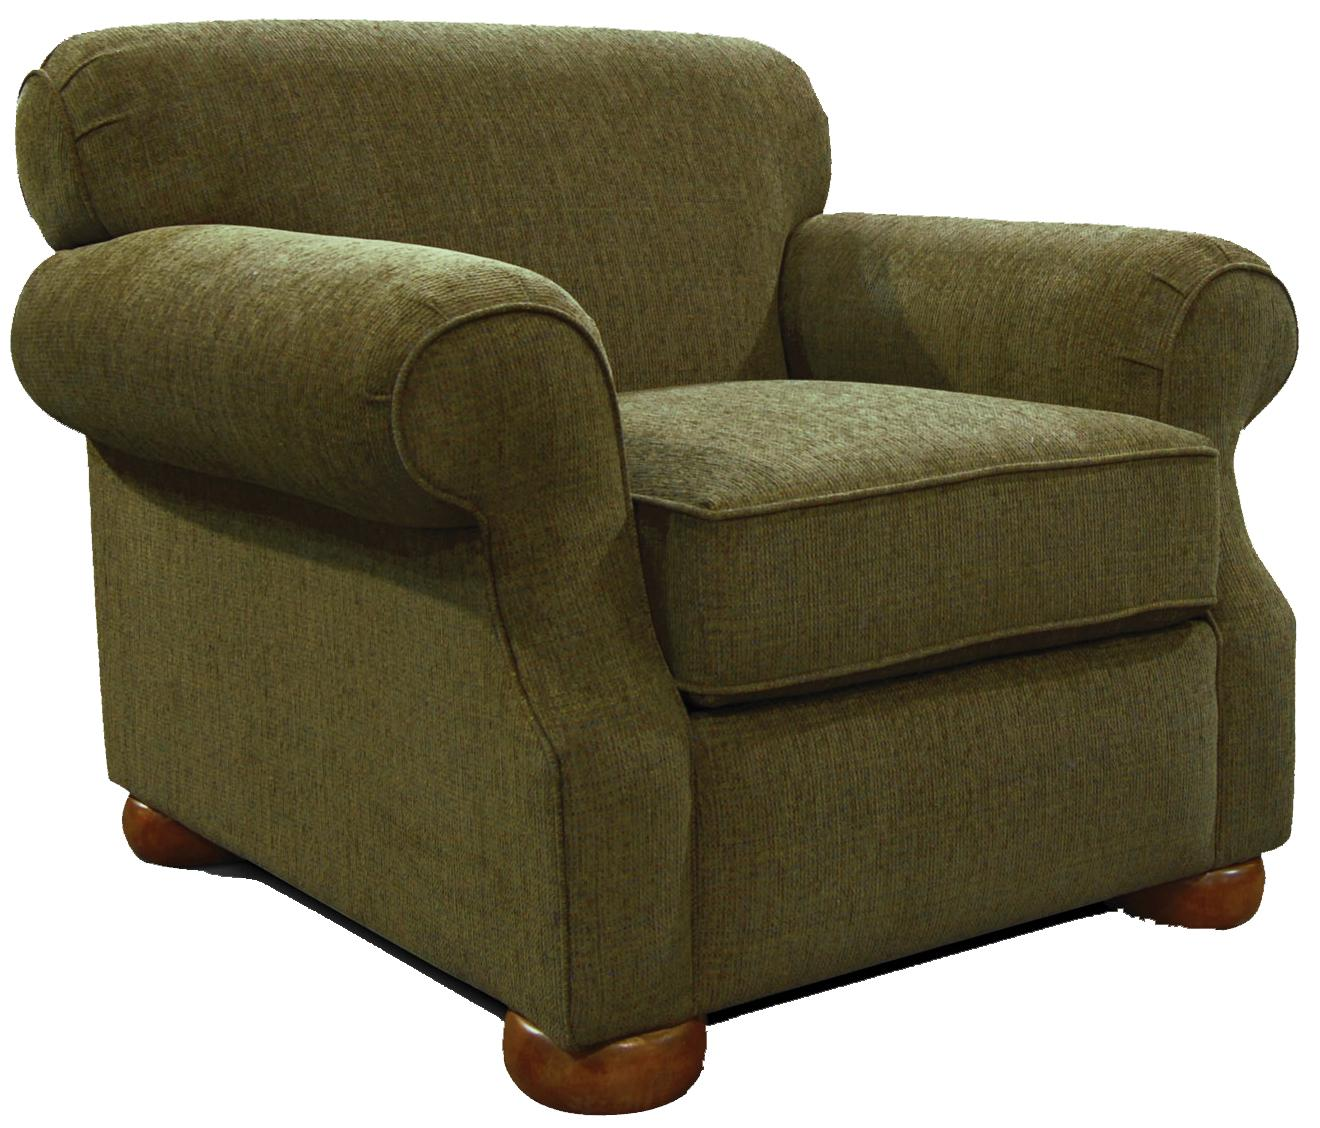 England Melbourne Chair - Item Number: 6154